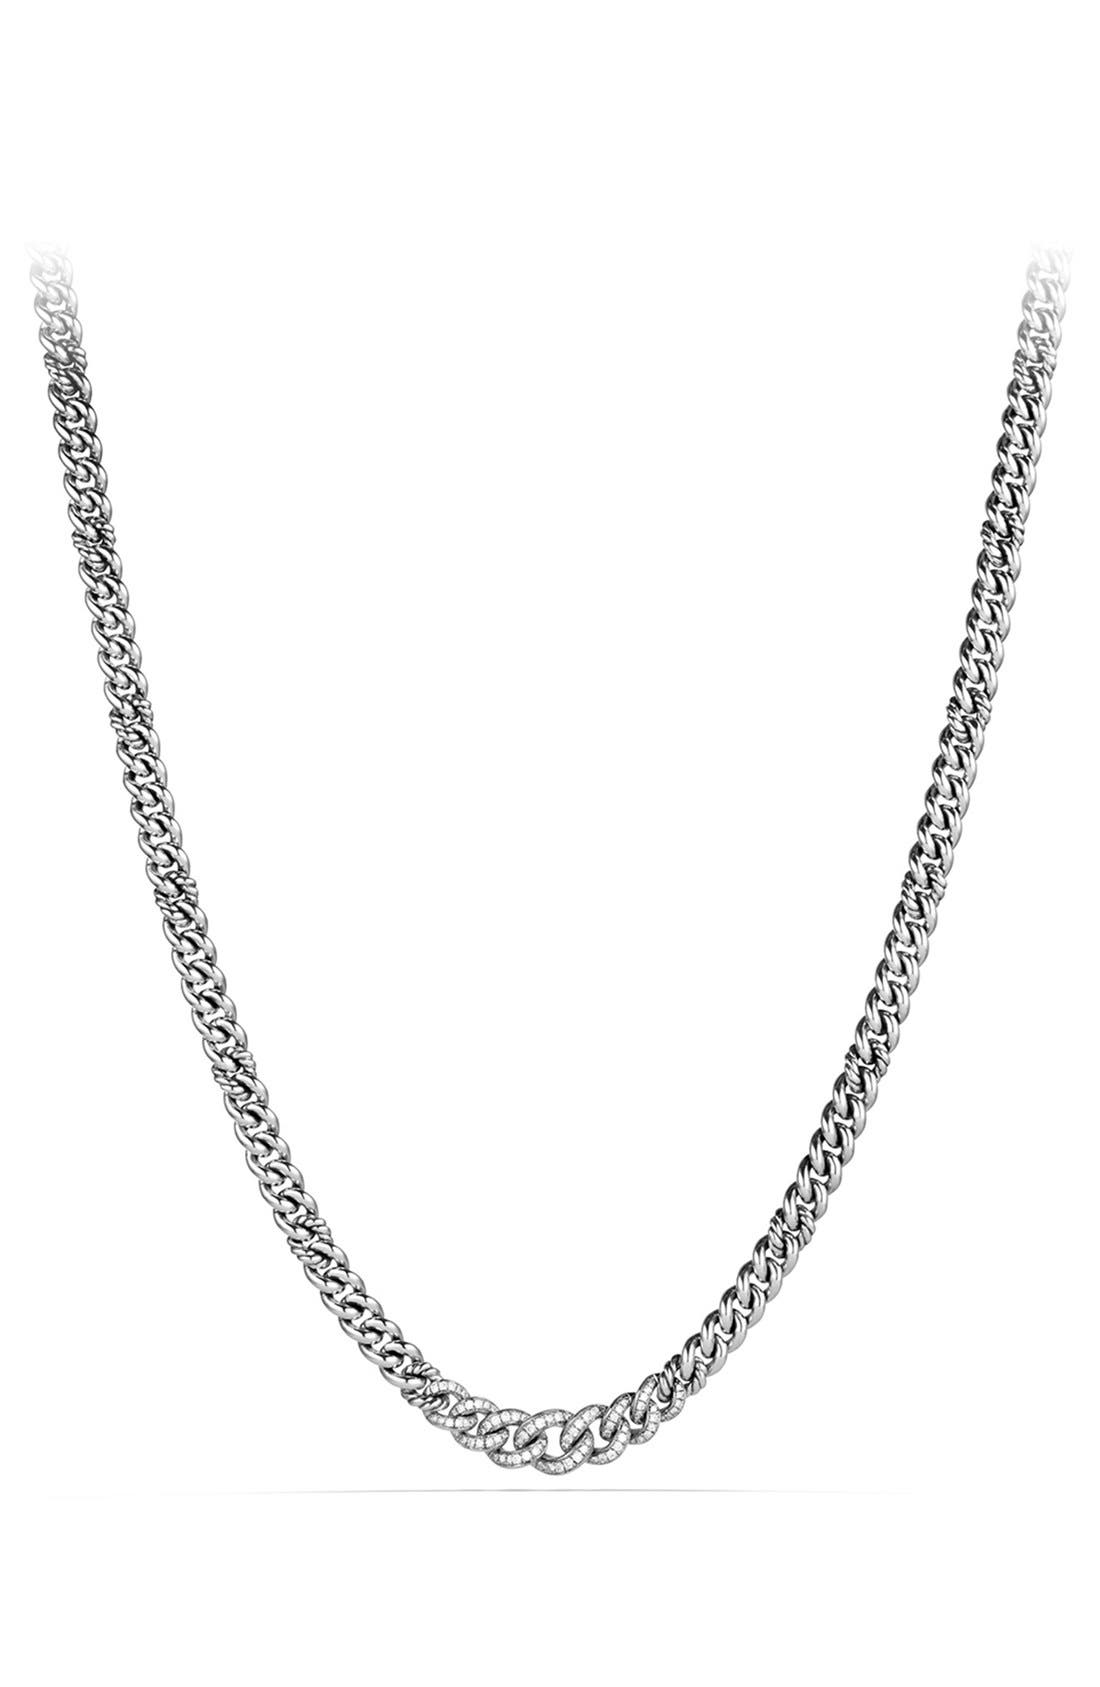 Alternate Image 1 Selected - David Yurman 'Petite Pavé' Curb Chain Necklace with Diamonds